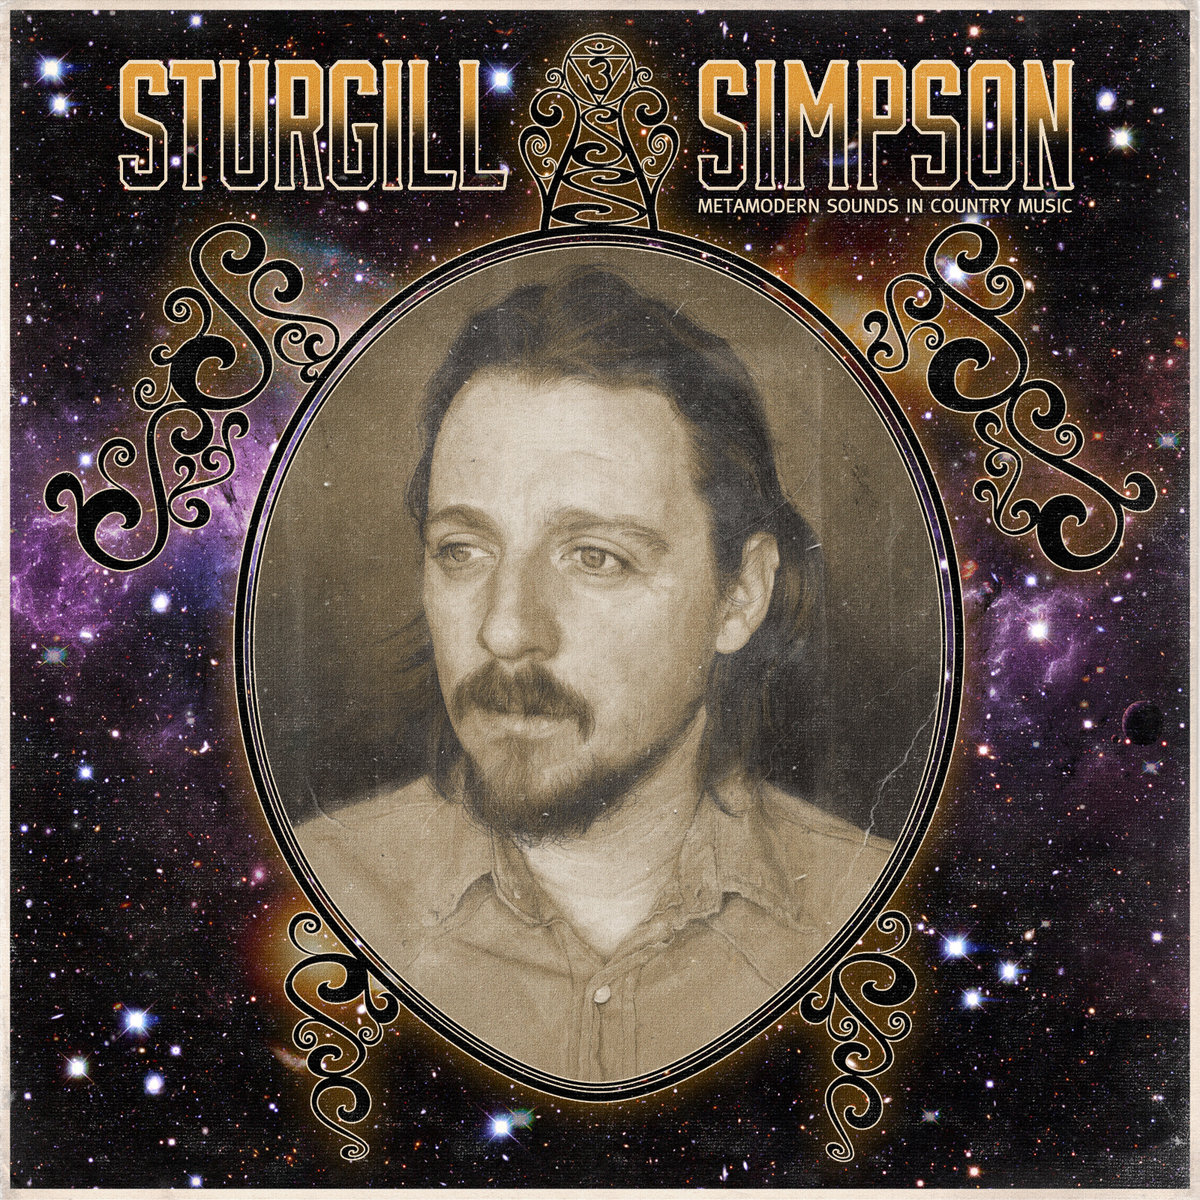 Sturgill Simpson - Metamodern Sounds in Country music   Pete Lyman   High Top Mountain Records